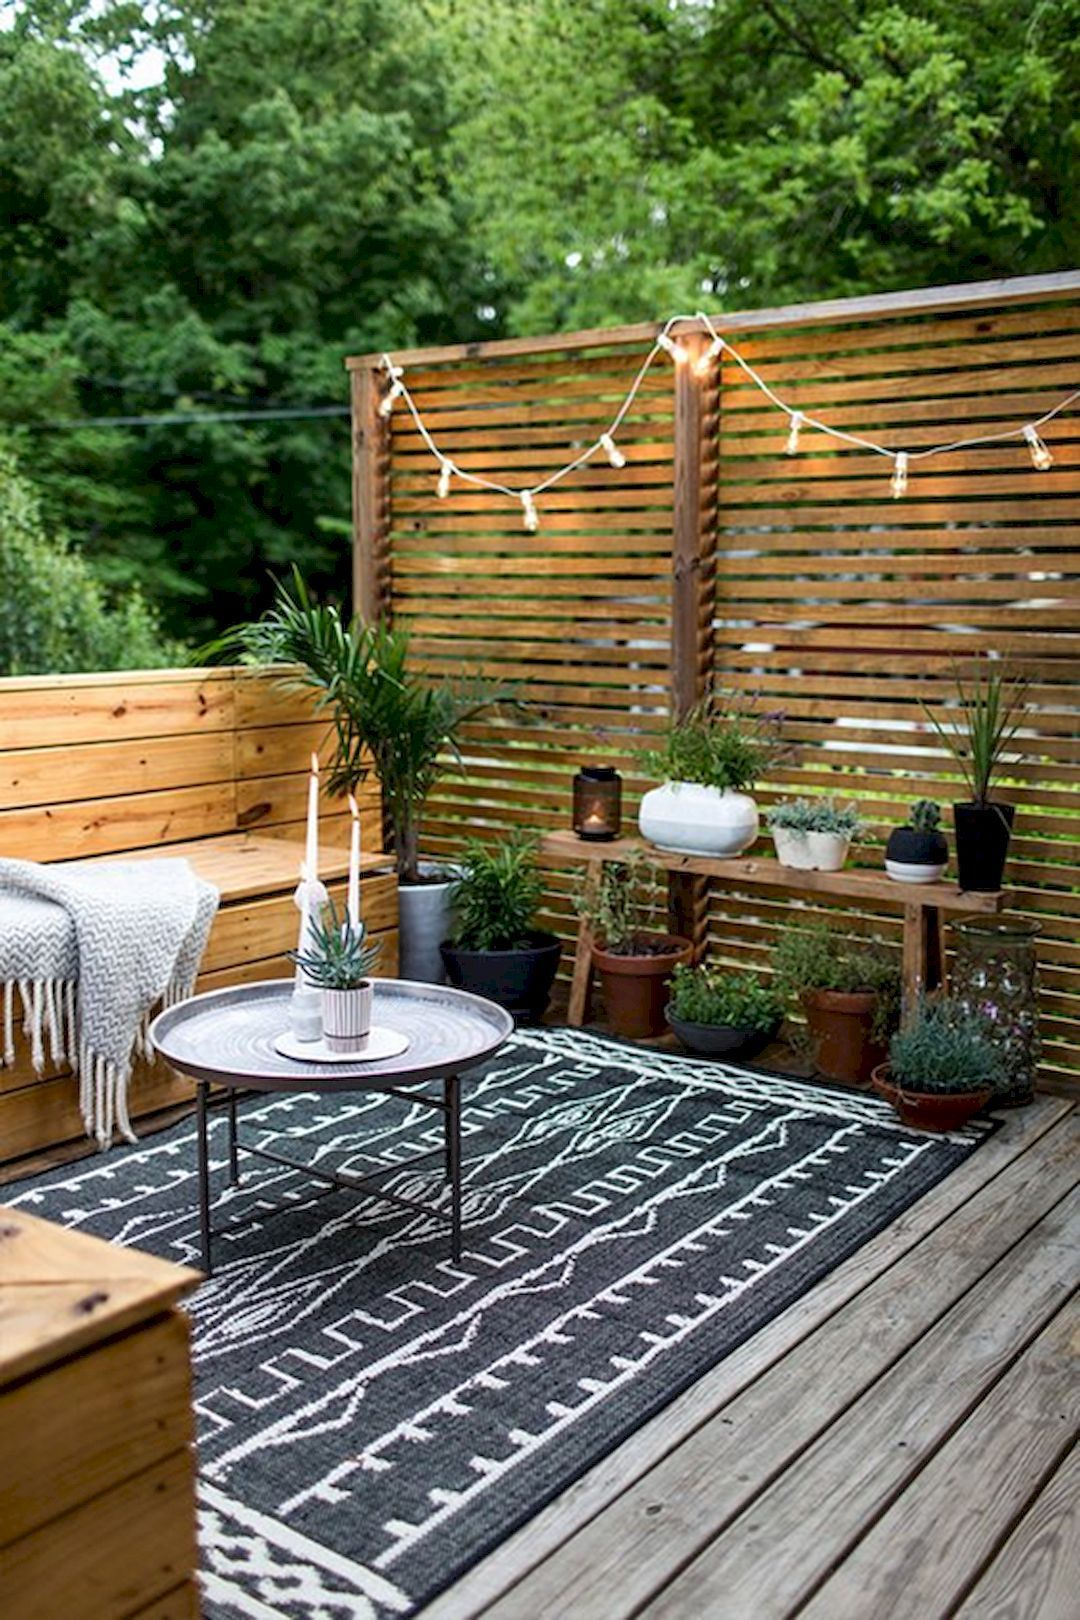 4 Tips To Start Building a Backyard